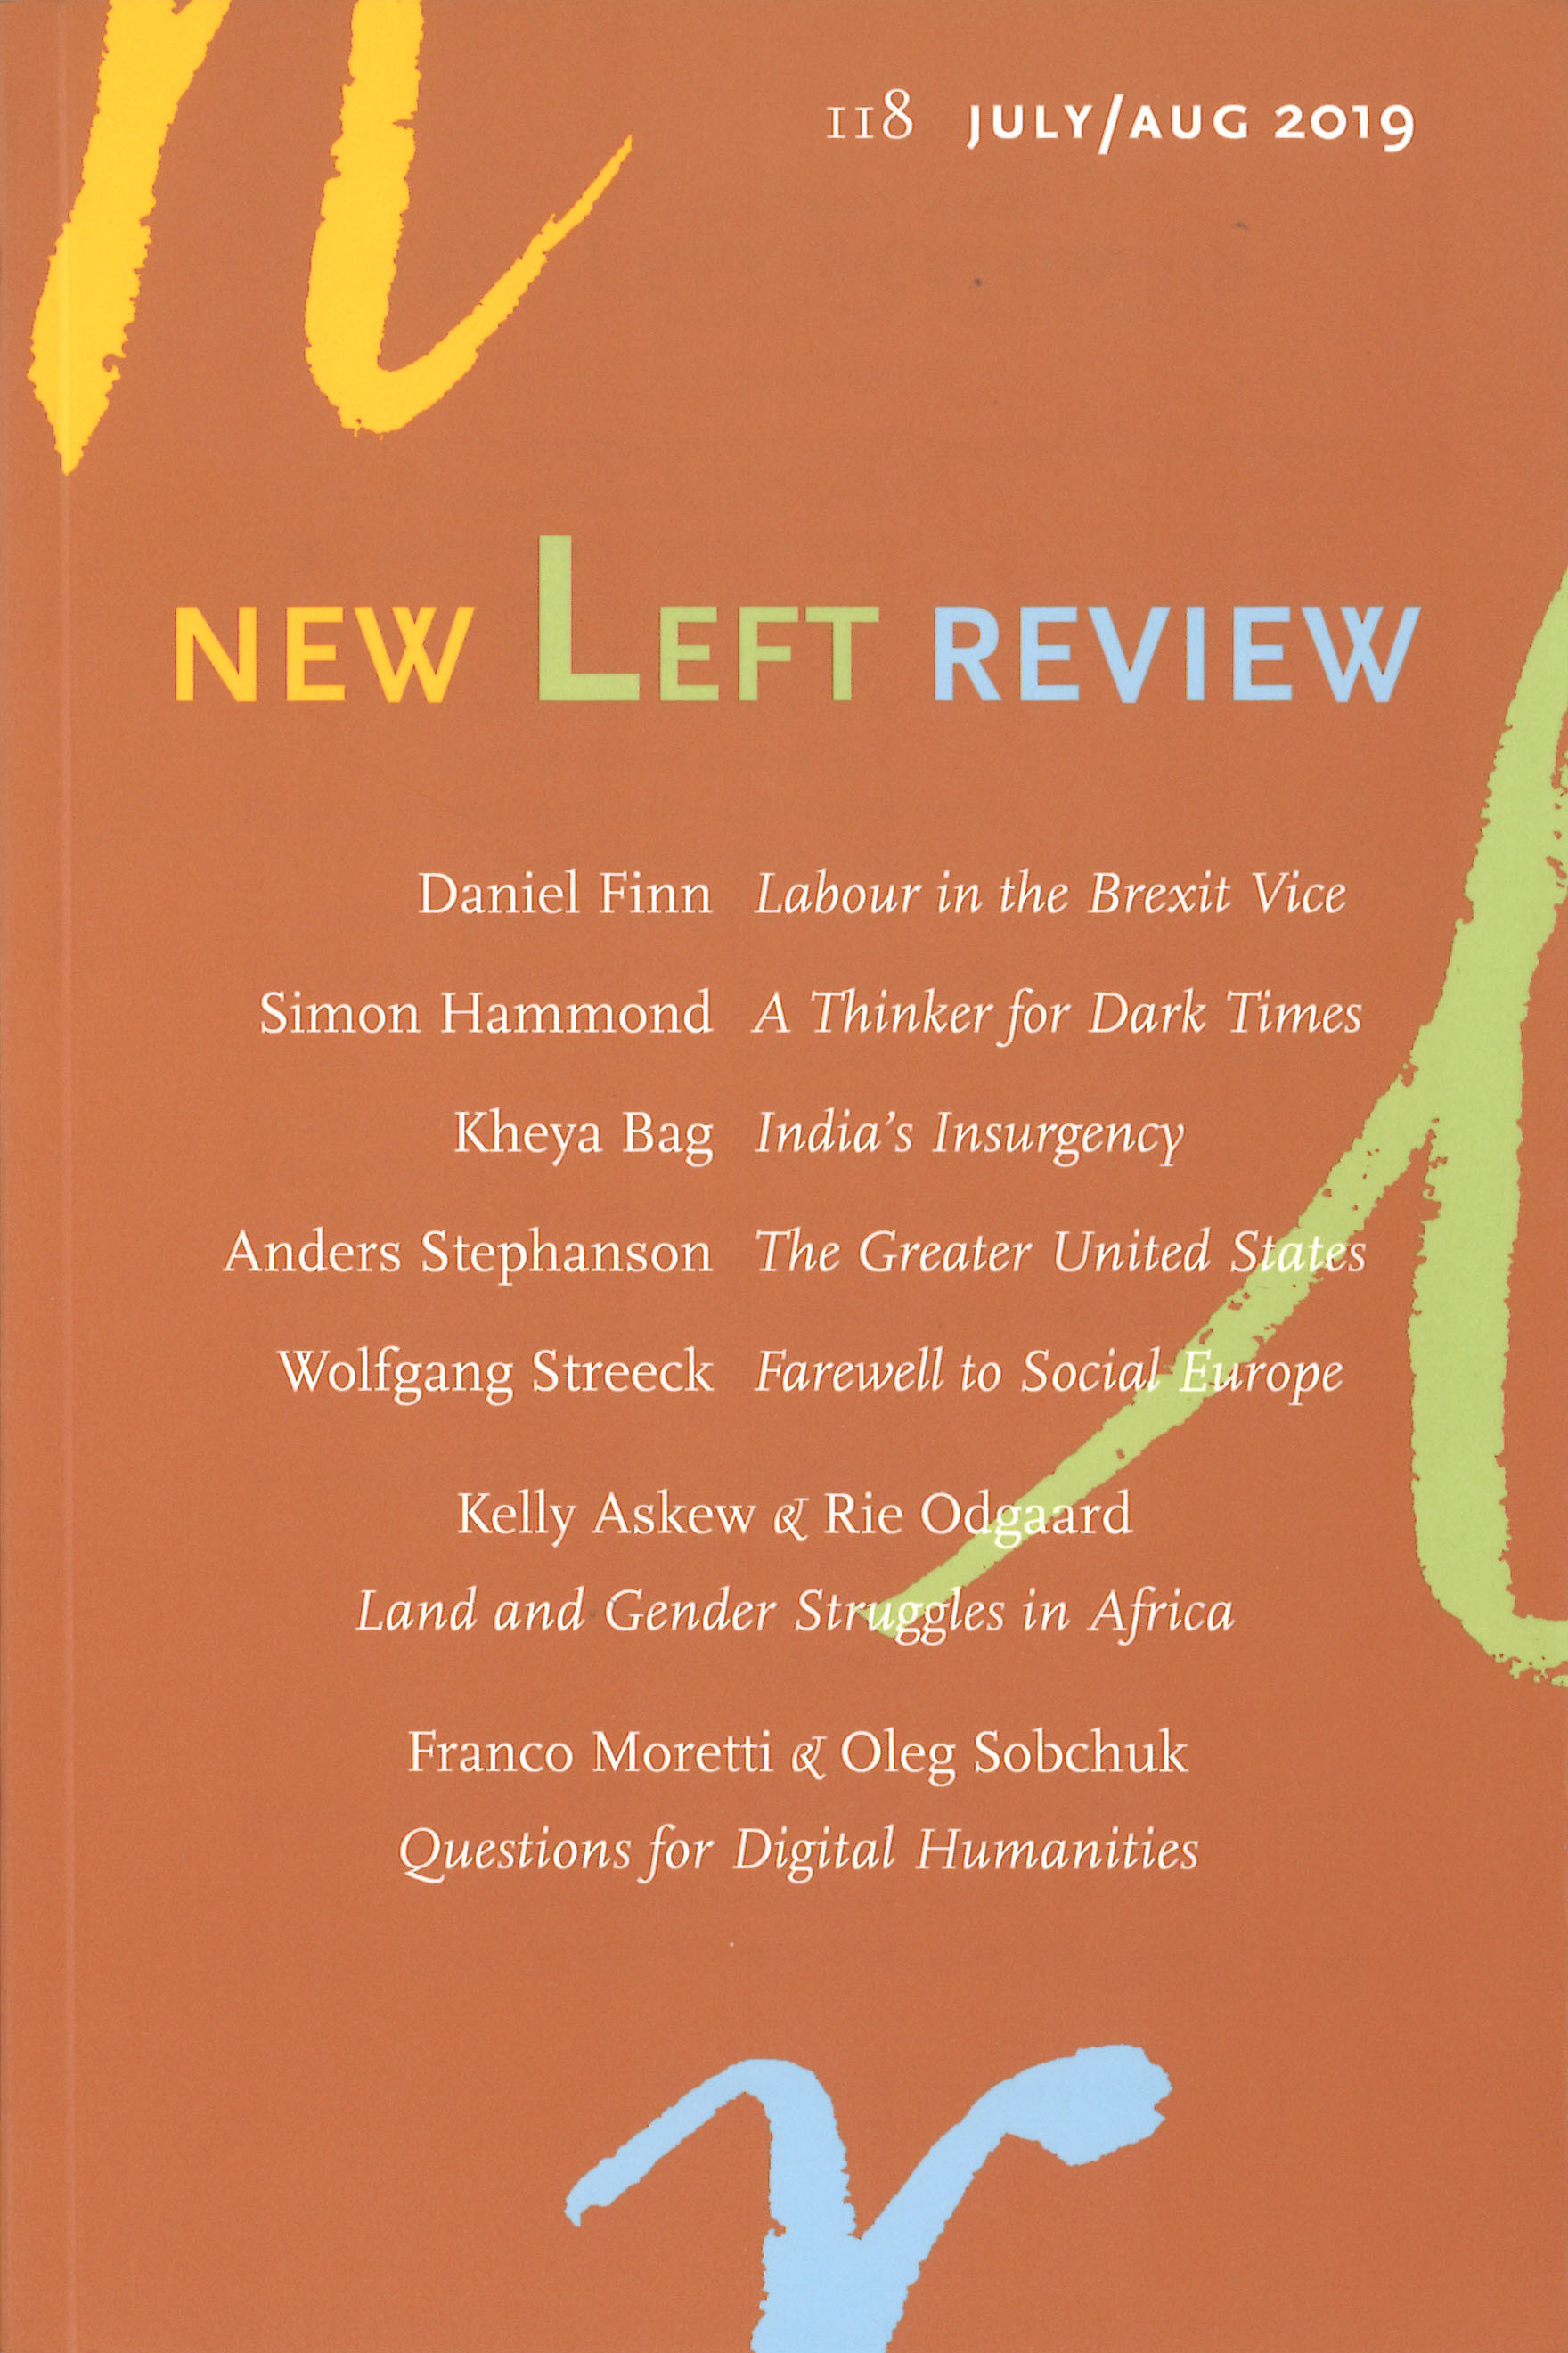 New Left Review 118 July/August 2019